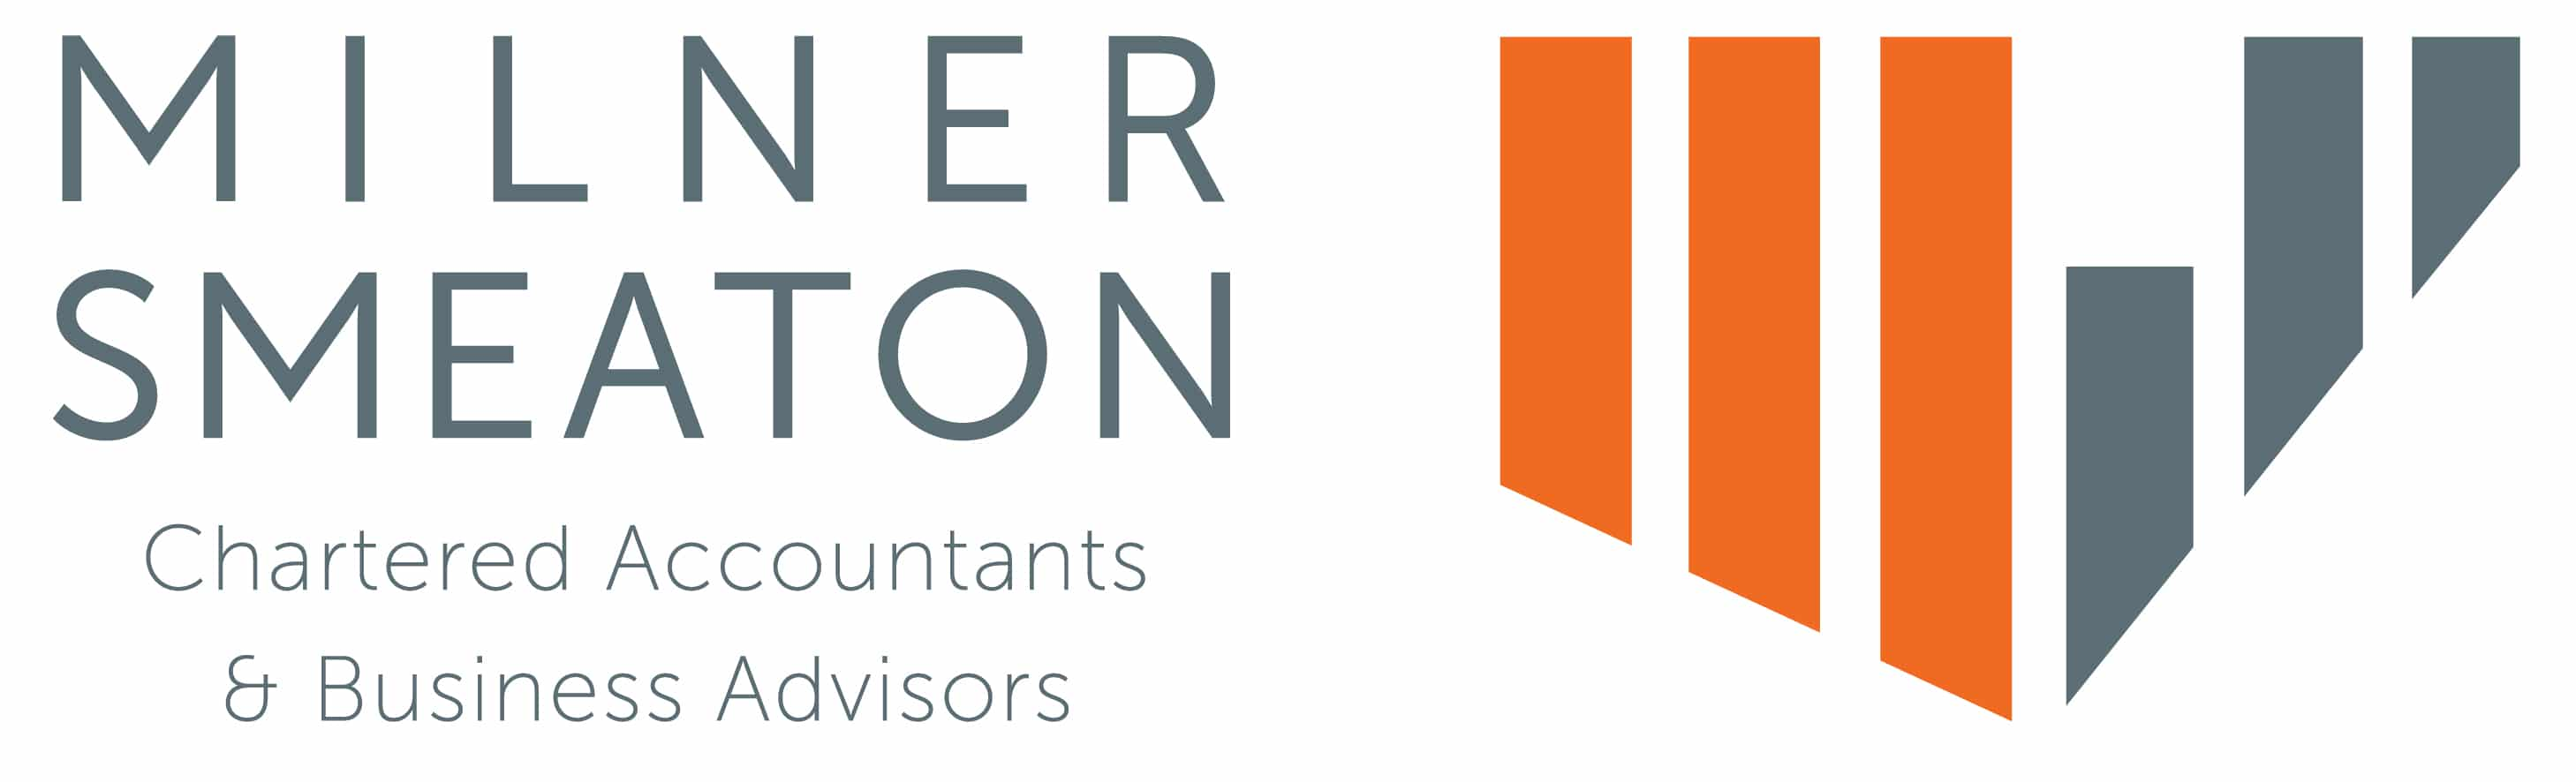 Milner Smeaton Chartered Accountants